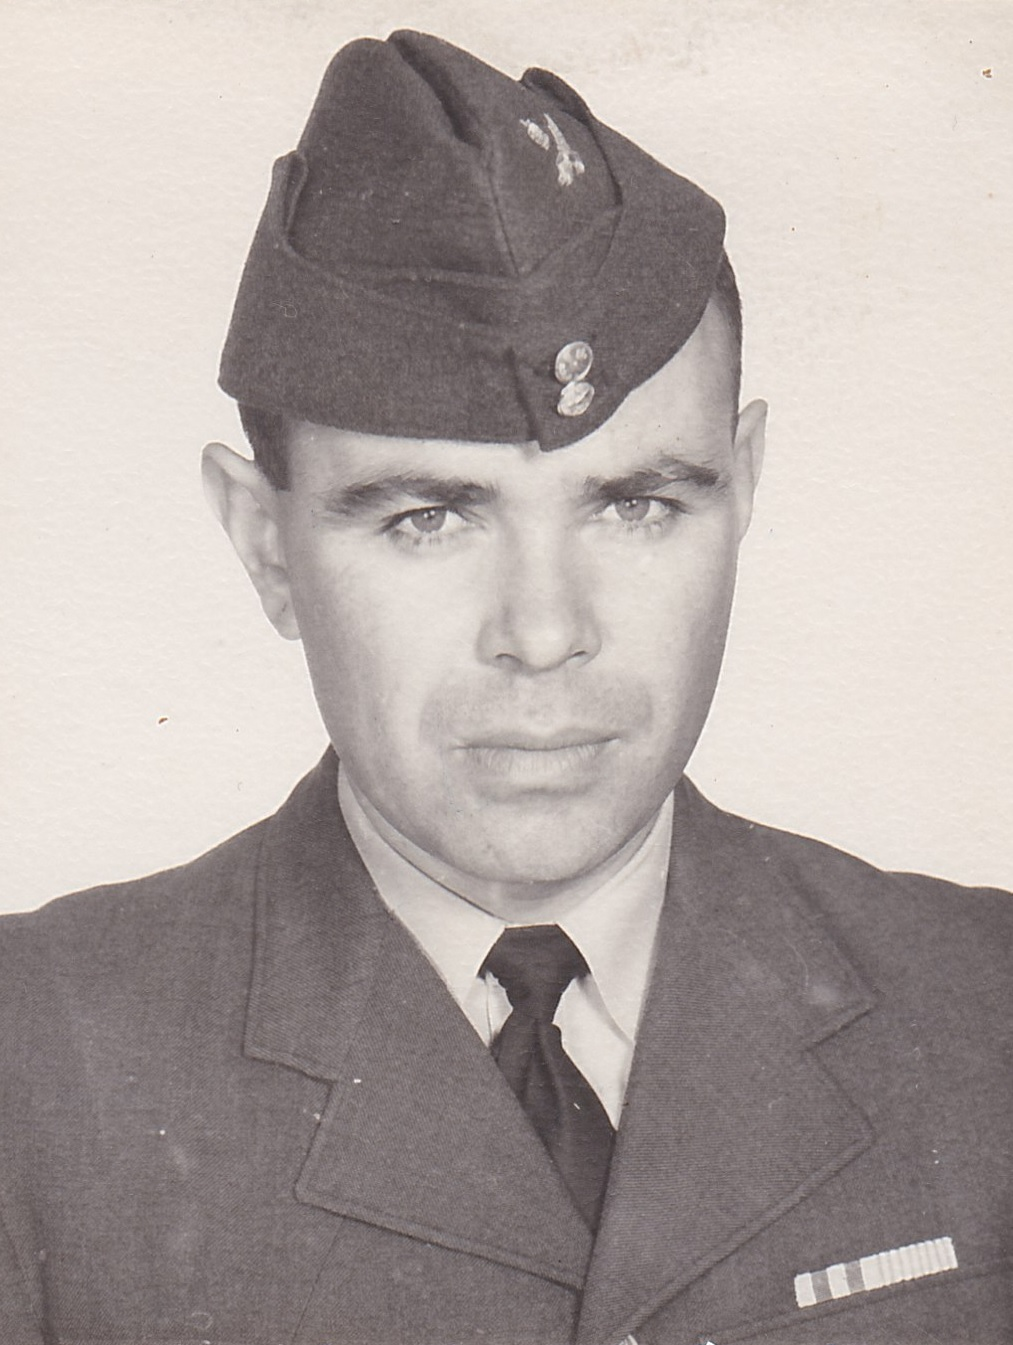 baf10c326a Portrait of Russell after he joined the RCAF ...